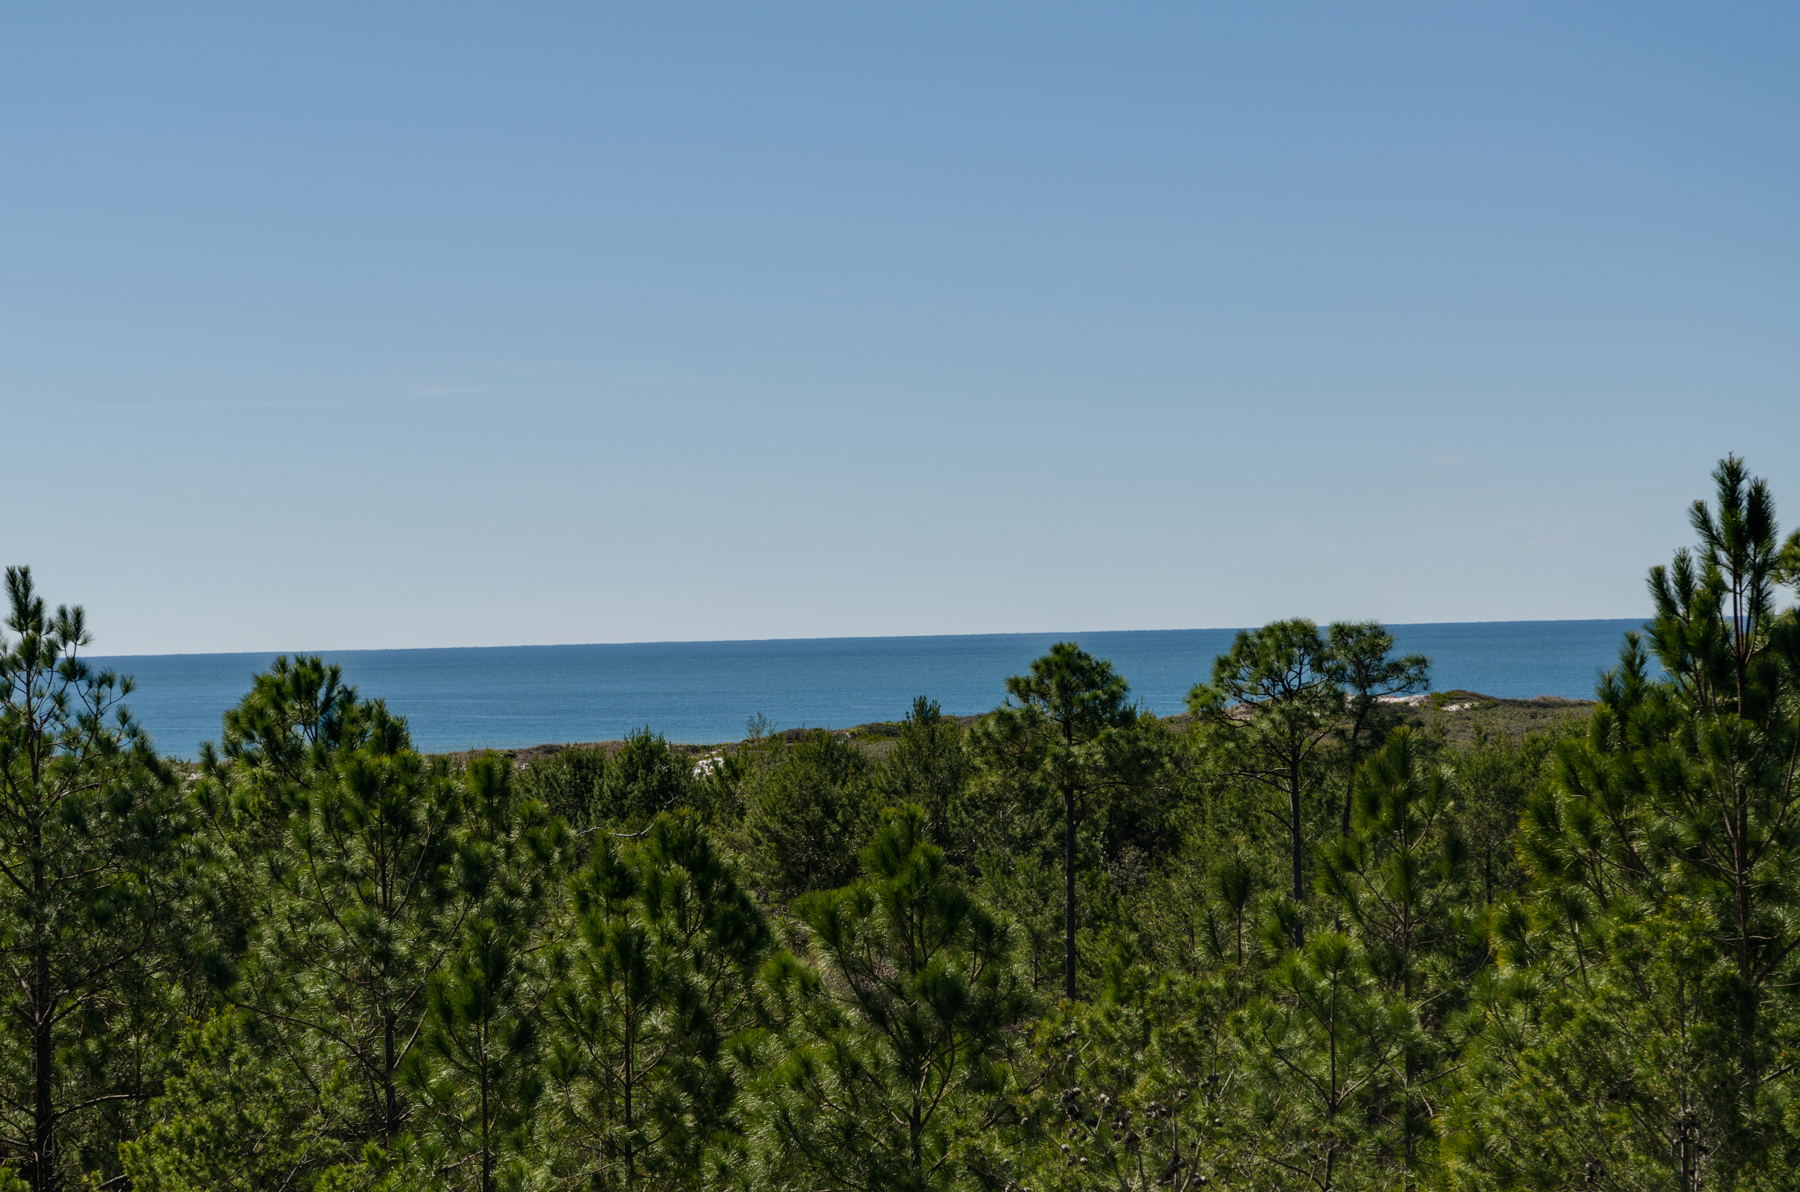 90 Sandstone Street Gulf View lot 30A